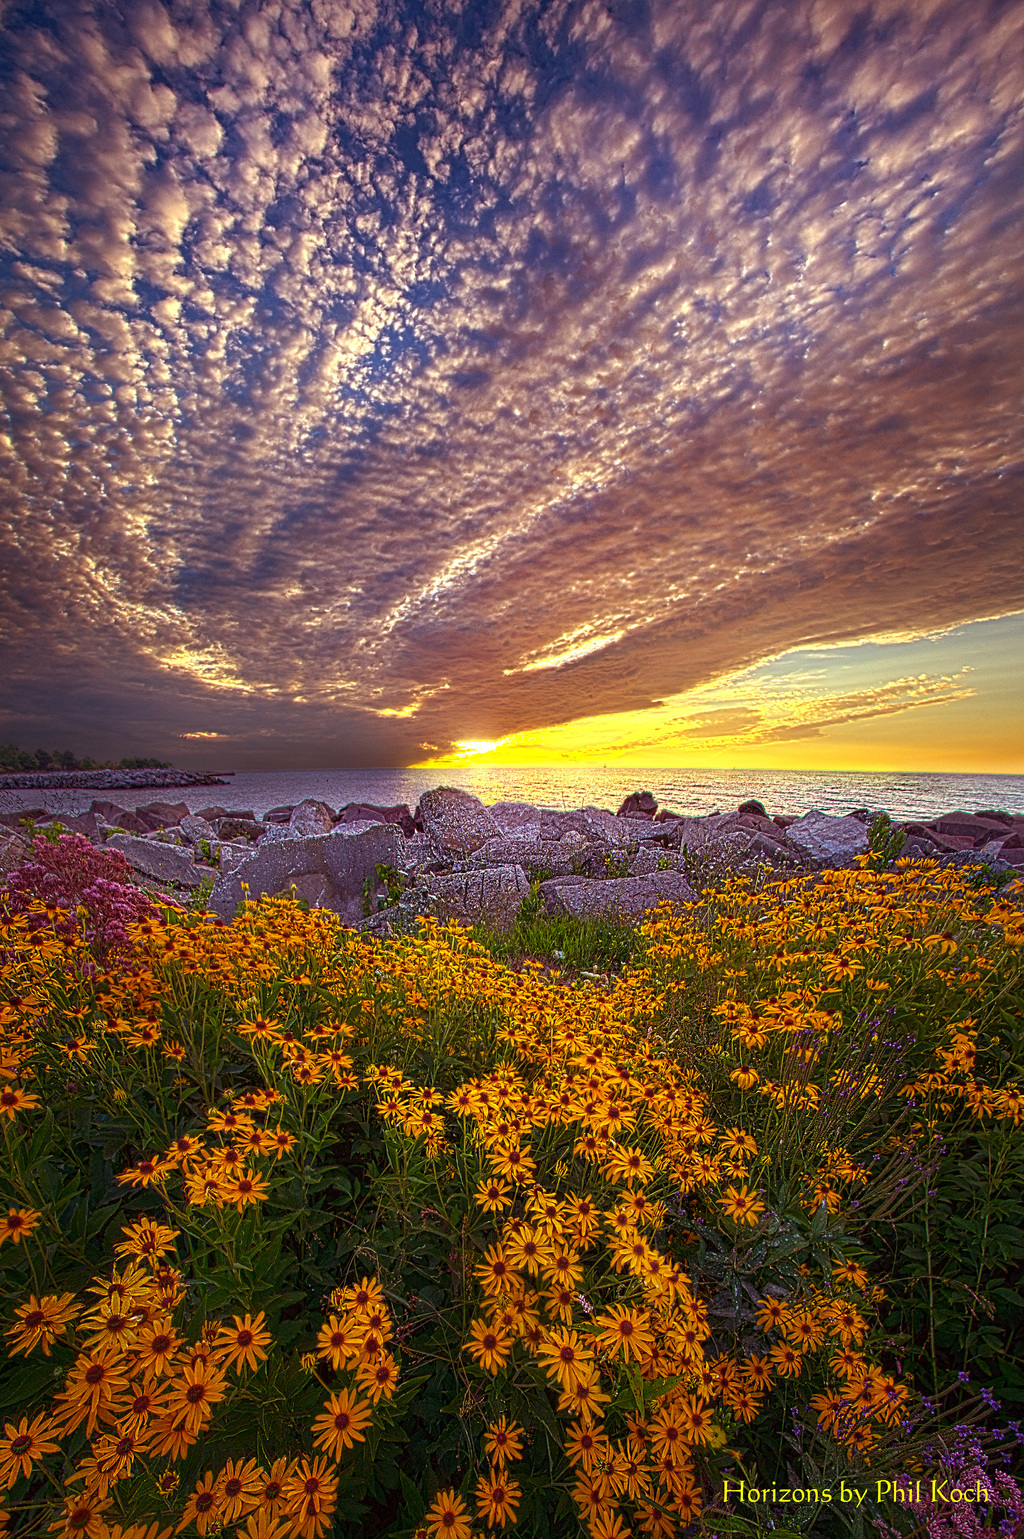 """""""The Simplest Things""""                                         Sunrise on the shore of Lake Michigan ... via Phil Koch"""